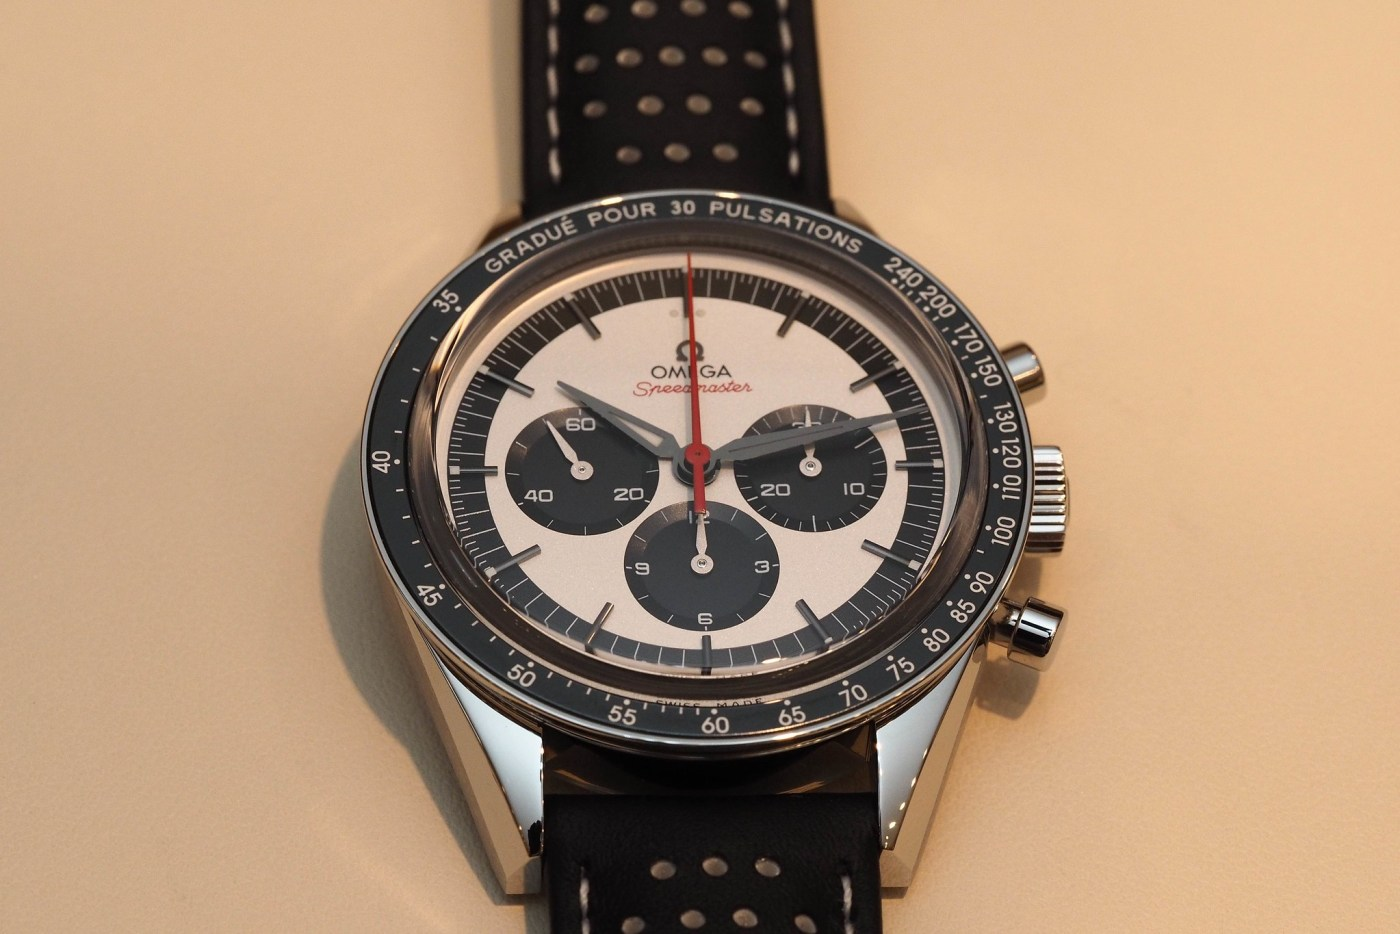 Omega Speedmaster CK2998 Limited Edition Panda dial top angle